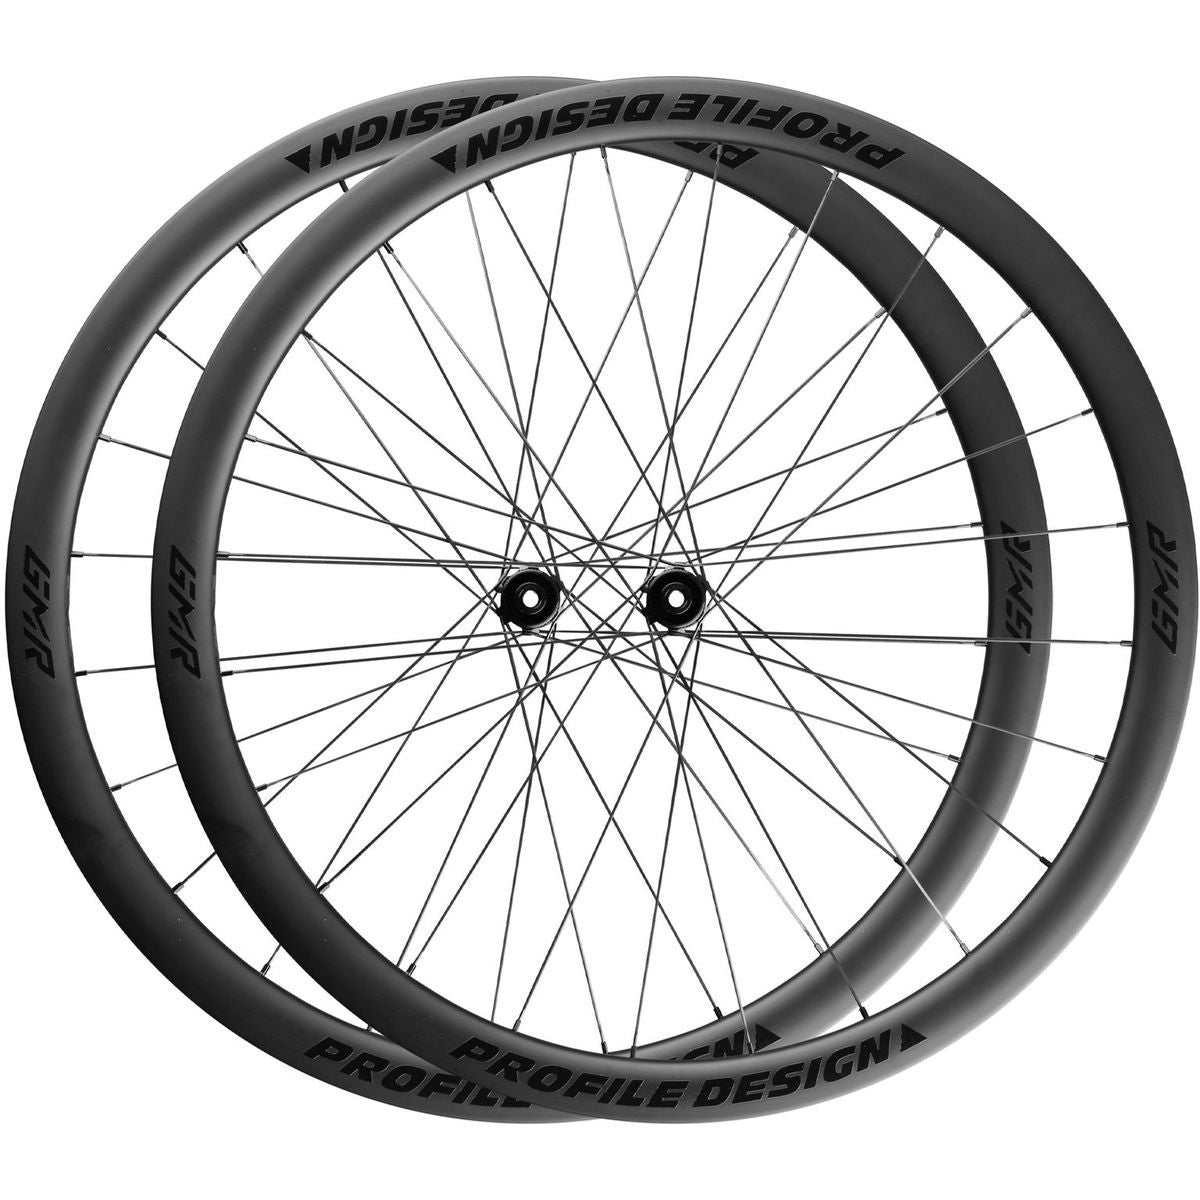 GMR 38 Carbon Tubeless Disc-Brake Wheelset